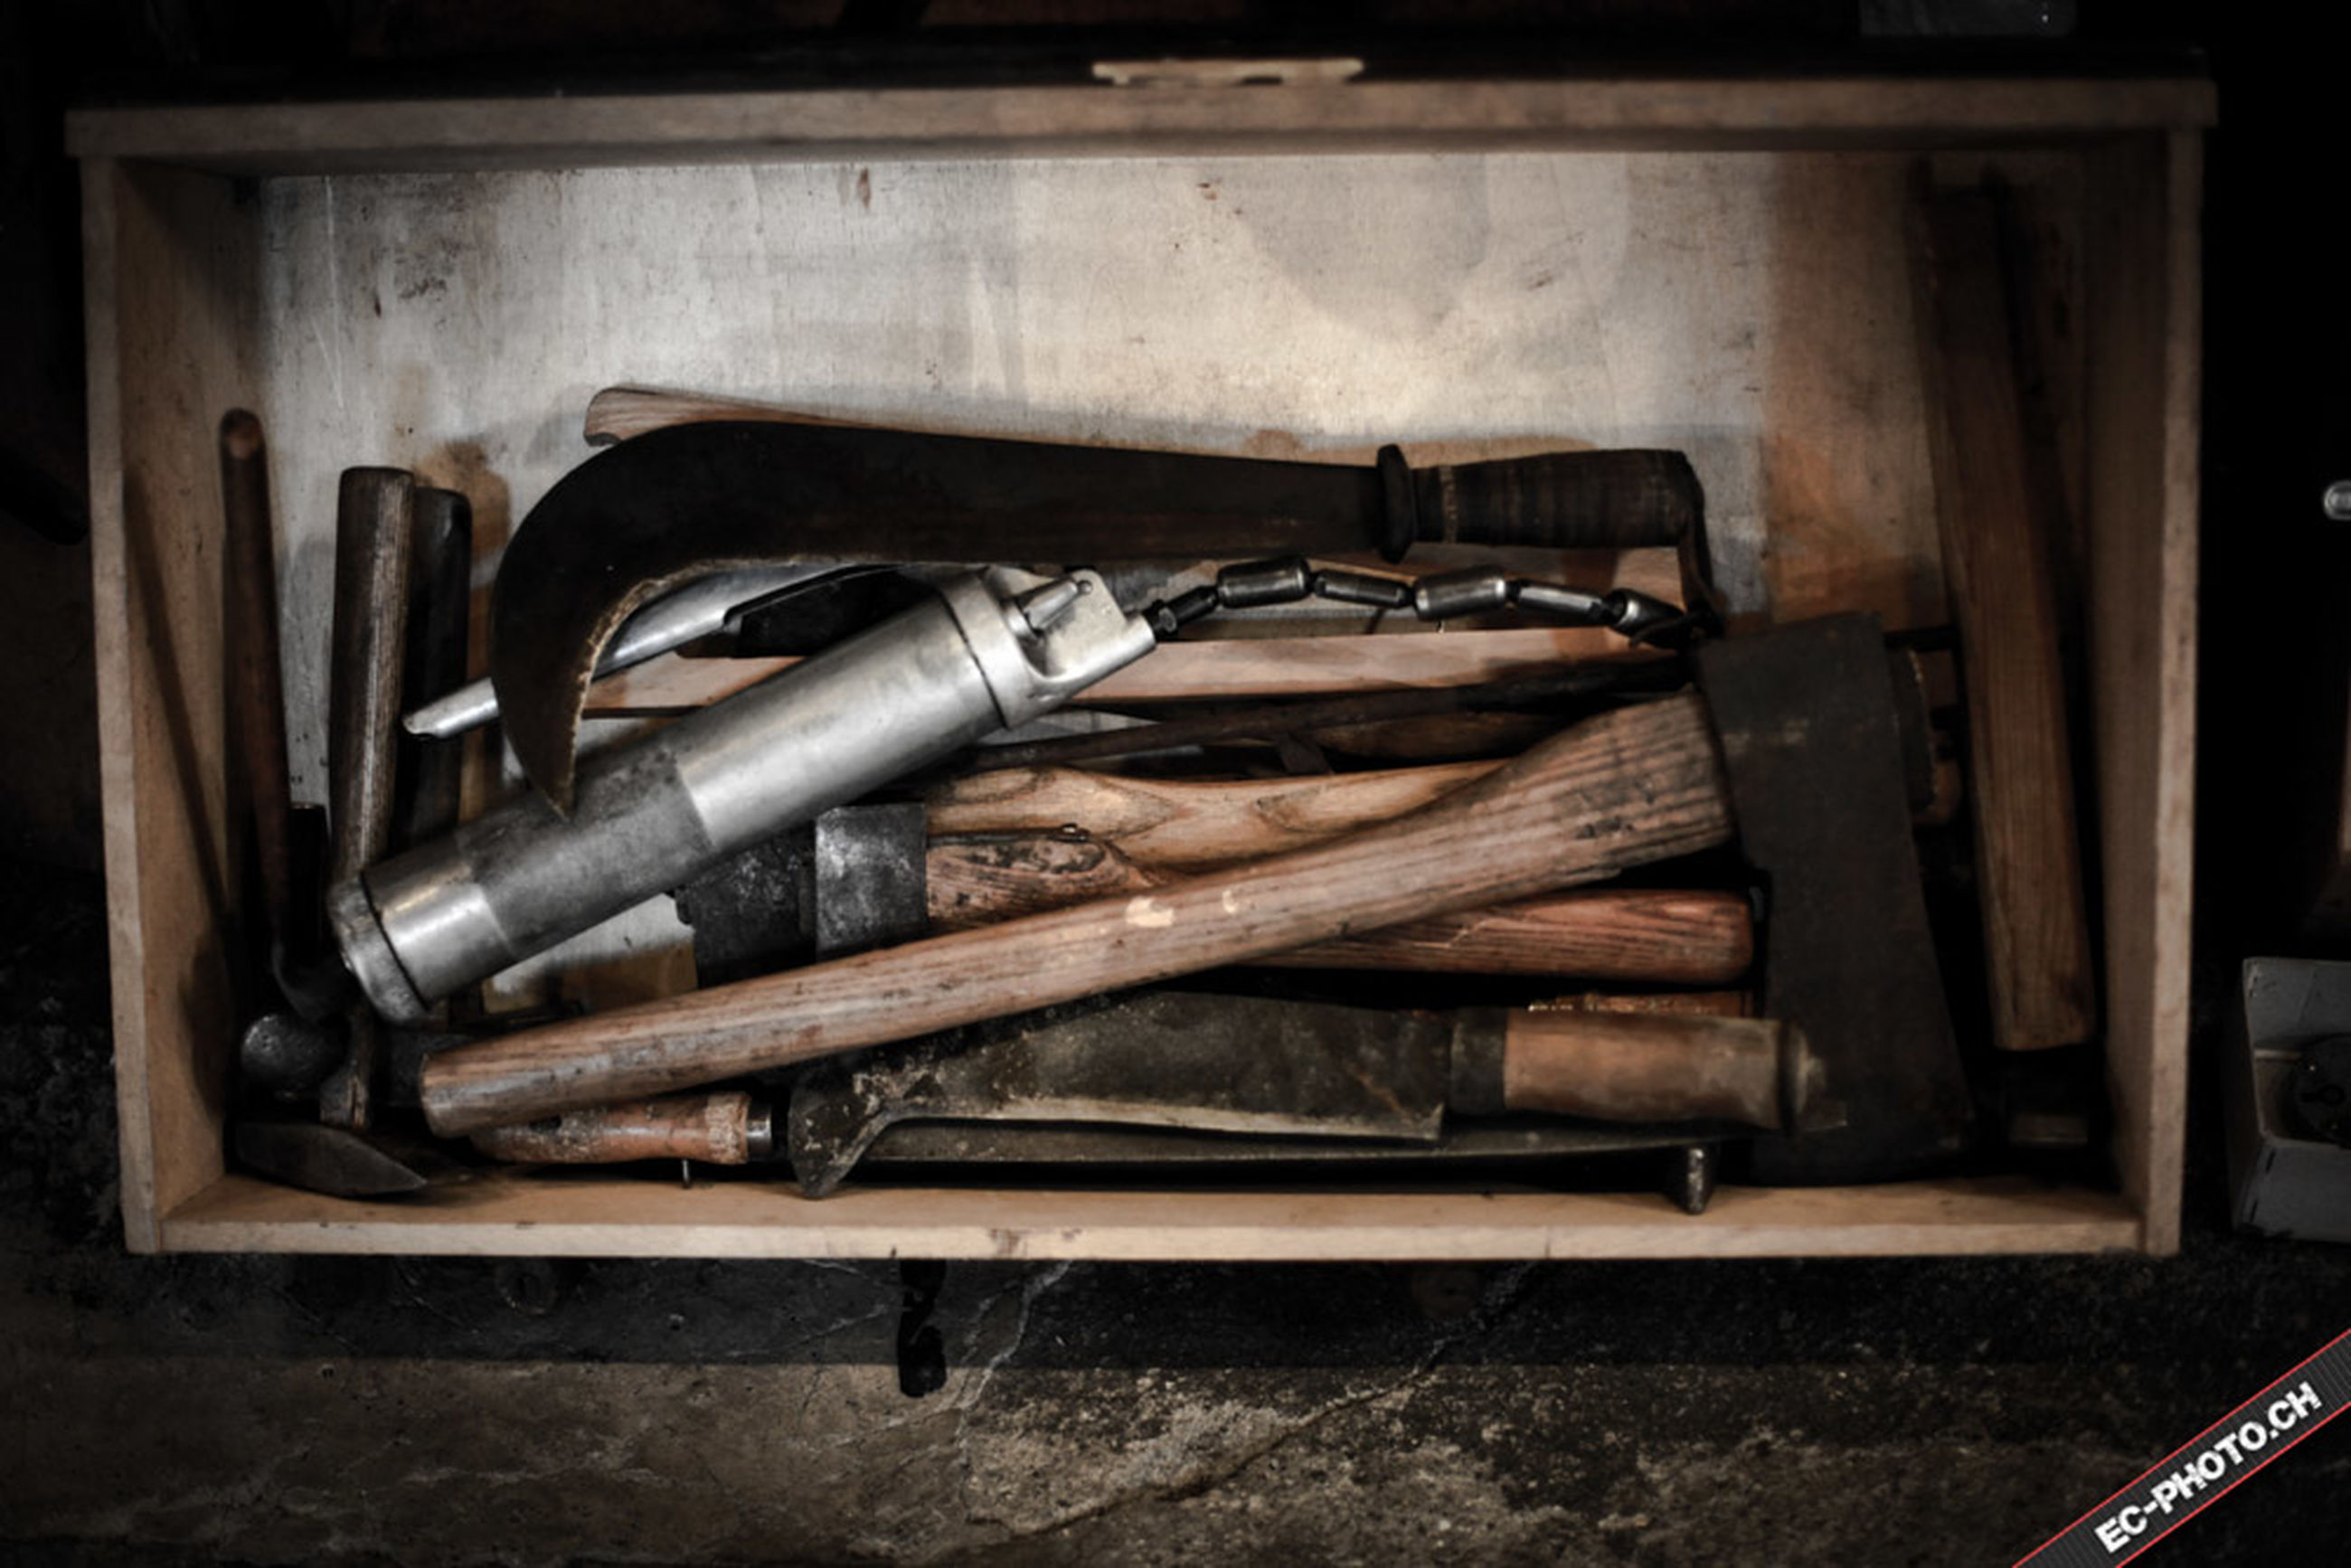 indoors, food and drink, preparation, wood - material, still life, food, obsolete, abandoned, old, firewood, barbecue grill, wood, no people, cooking, meat, heat - temperature, transfer print, damaged, auto post production filter, close-up